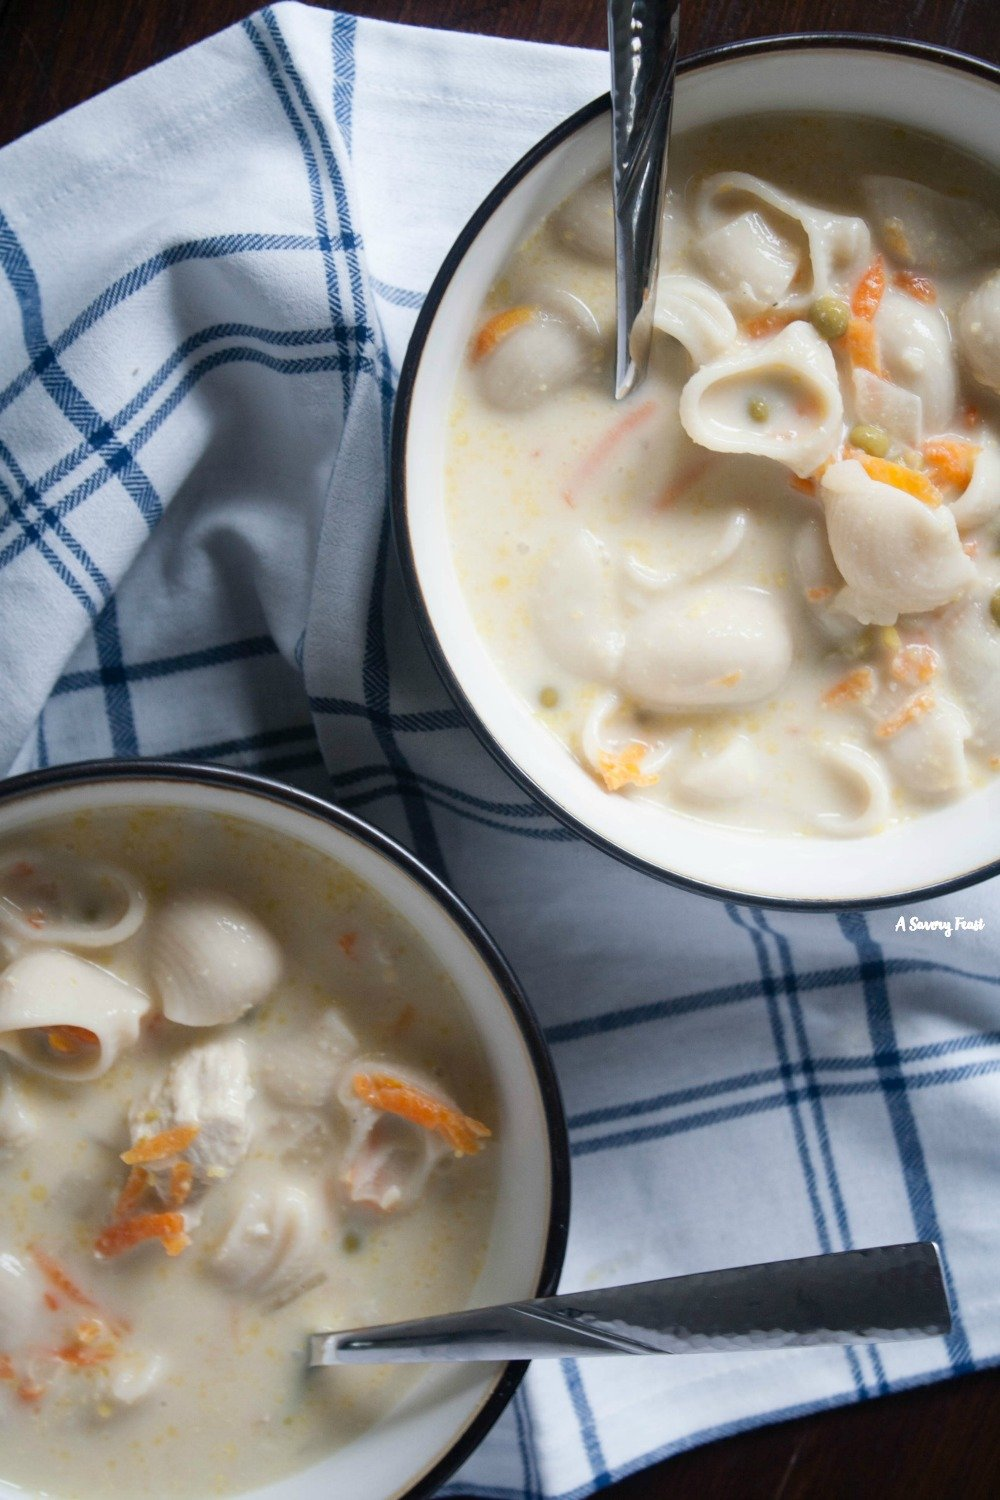 Warm up with this Creamy Chicken Noodle Soup recipe for dinner.